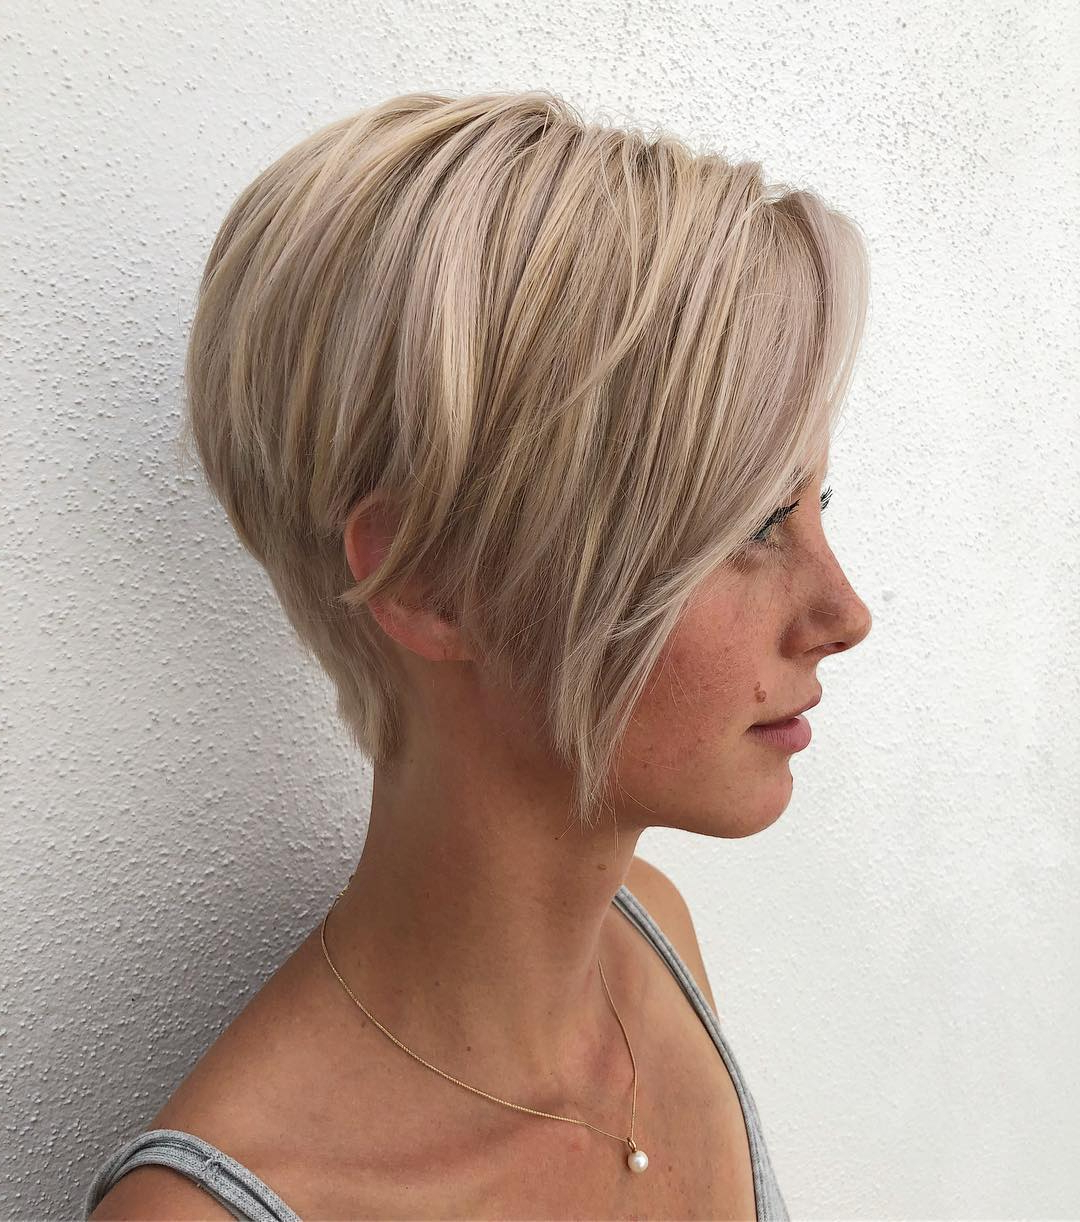 50 Head Turning Hairstyles For Thin Hair To Flaunt In 2020 Inside Popular Short Feathered Bob Crop Hairstyles (View 3 of 20)